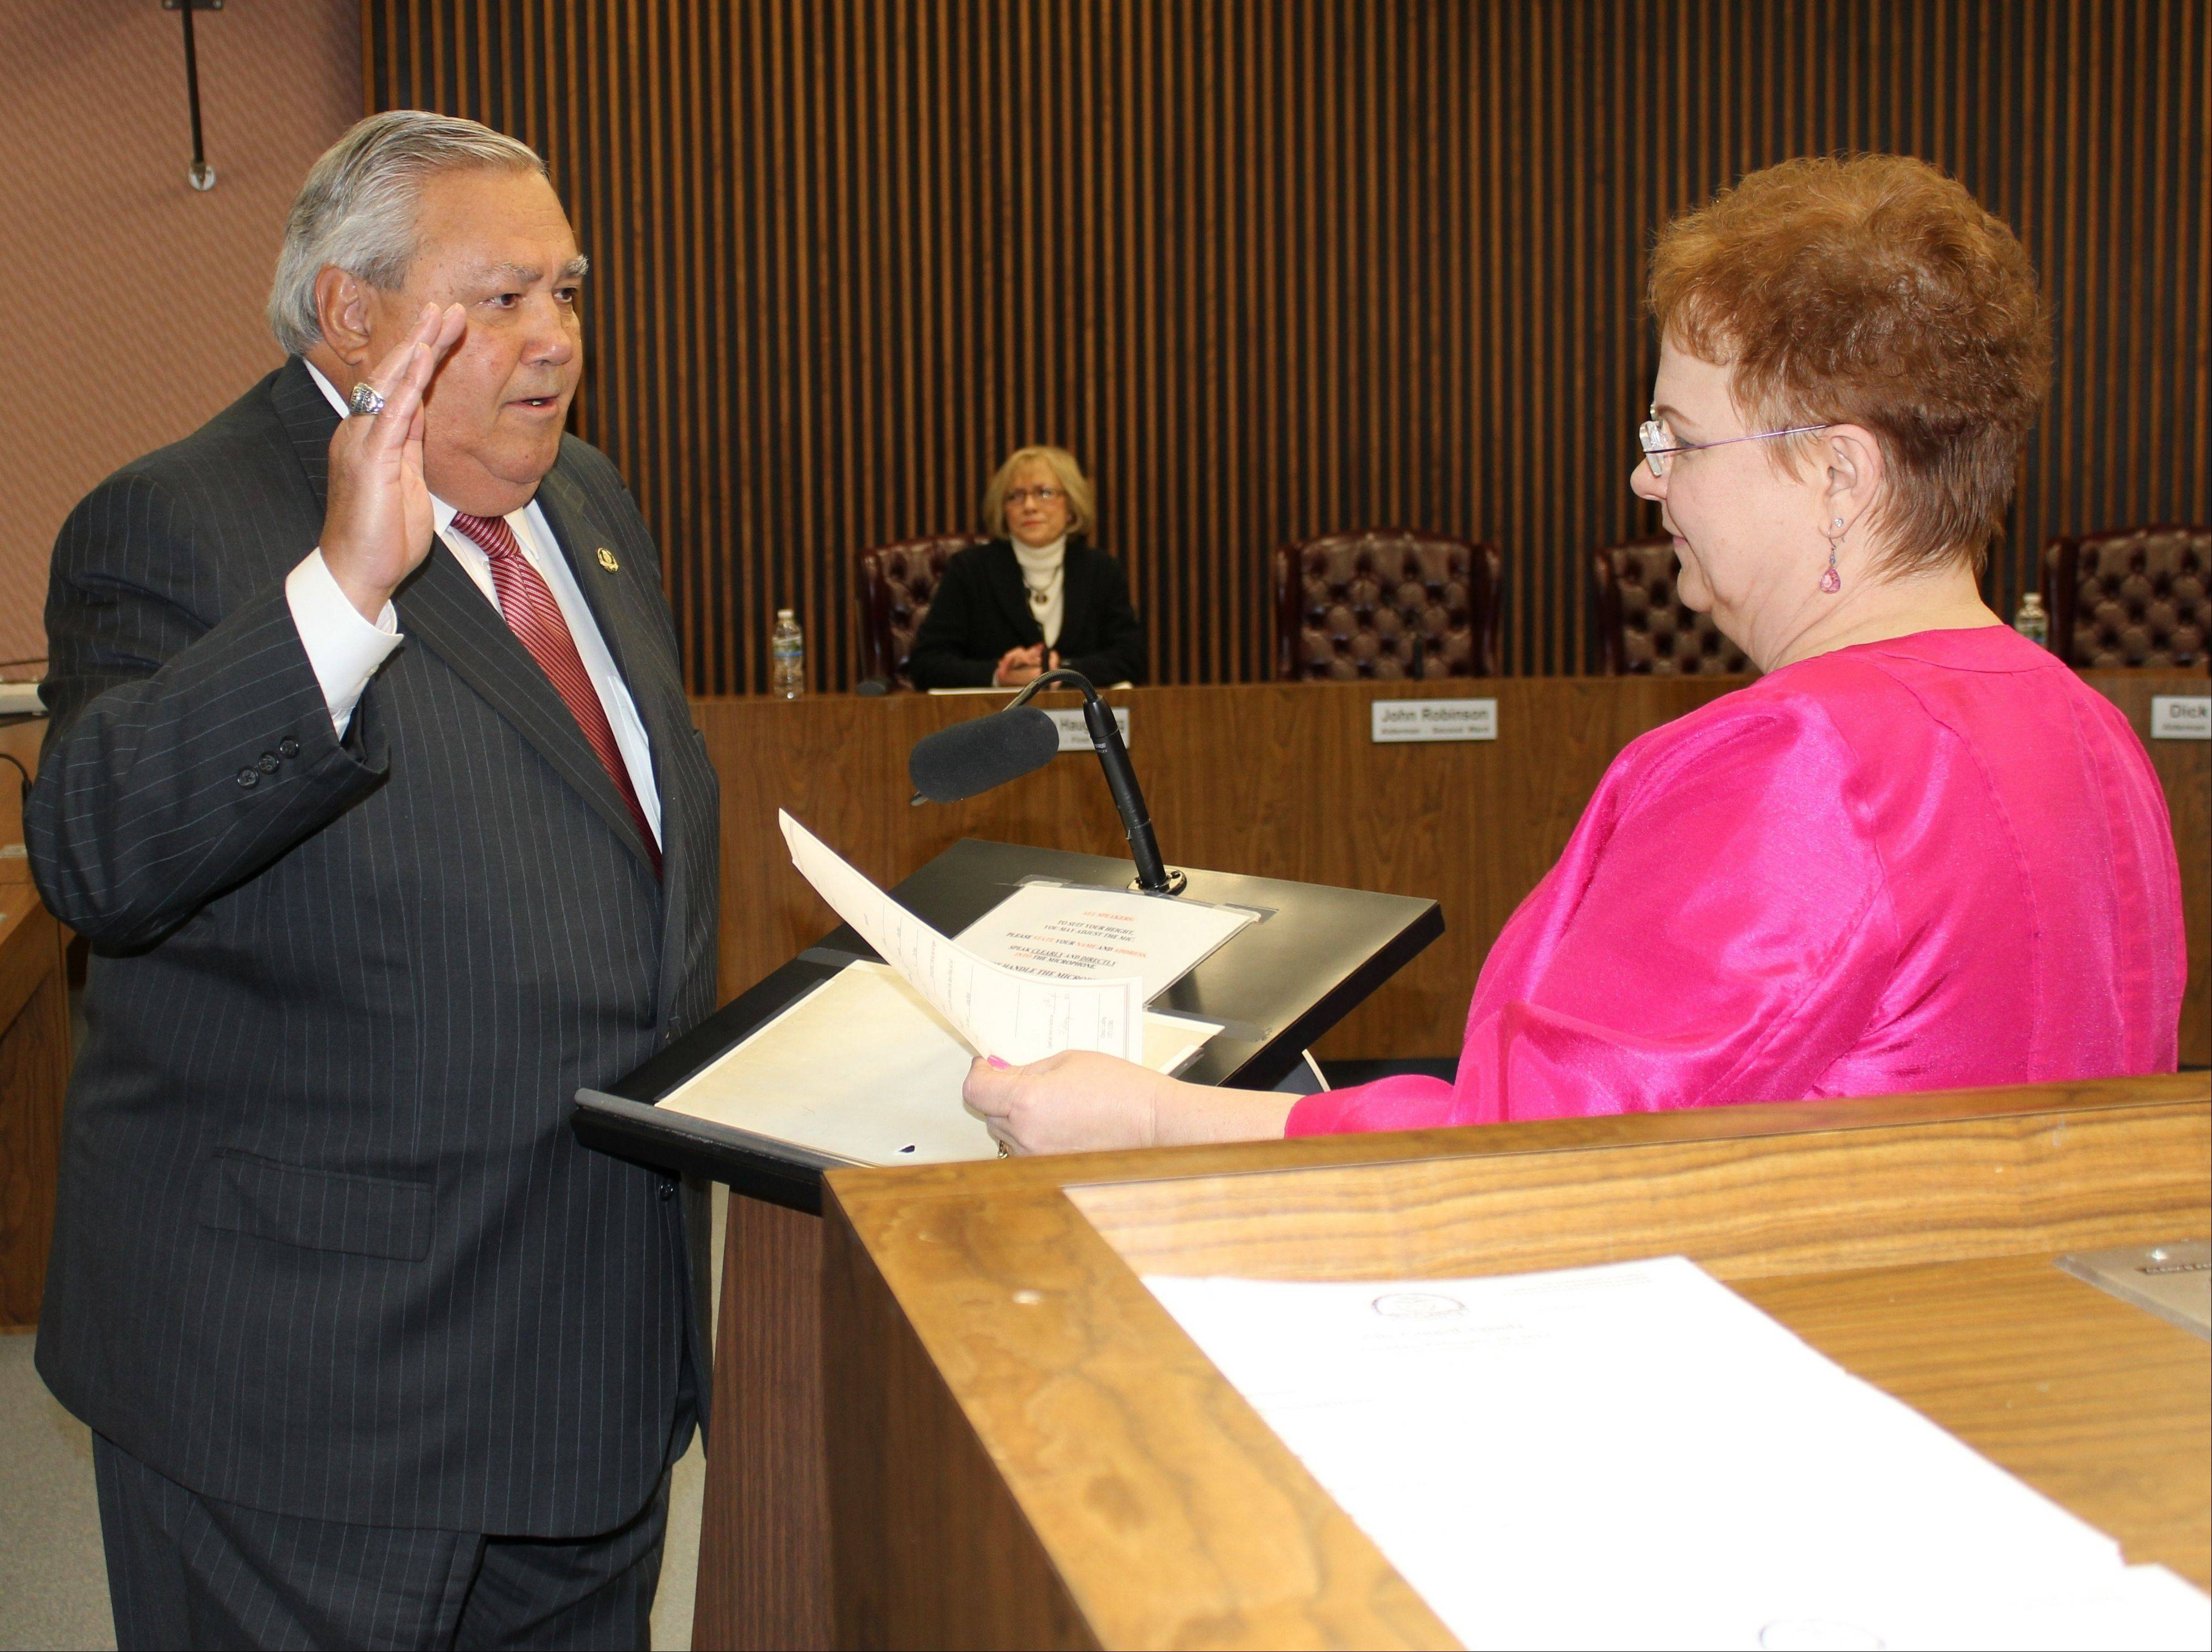 Fourth Ward Alderman Dick Sayad is sworn in as acting mayor of Des Plaines by City Clerk Gloria J. Ludwig at the Feb. 19 city council meeting.